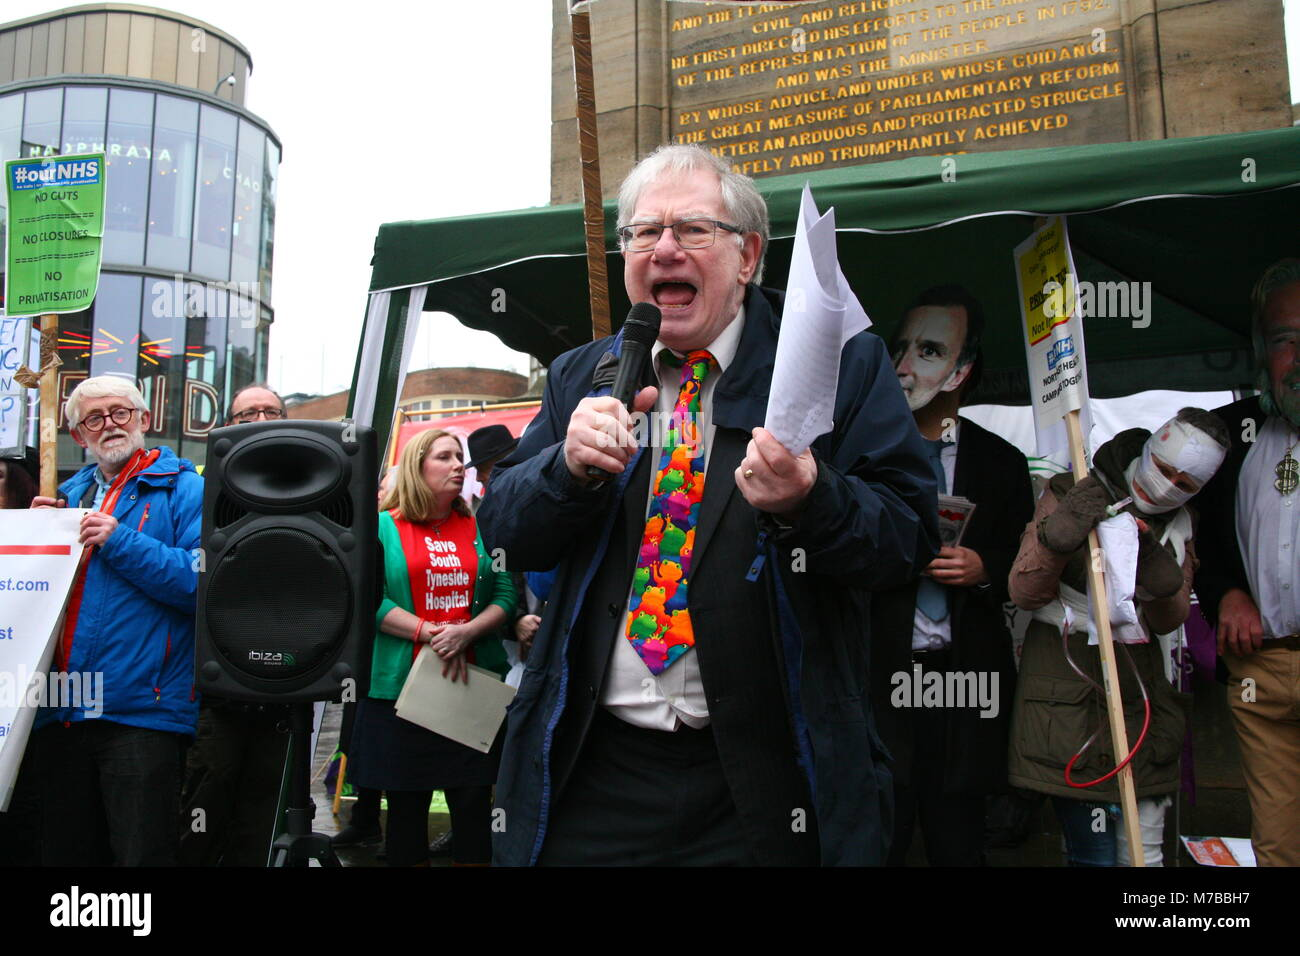 Newcastle, UK. 10th March, 2018. Save our NHS March & Protest against Cuts, Closures, Privatisation. David Whinham/Alamy - Stock Image